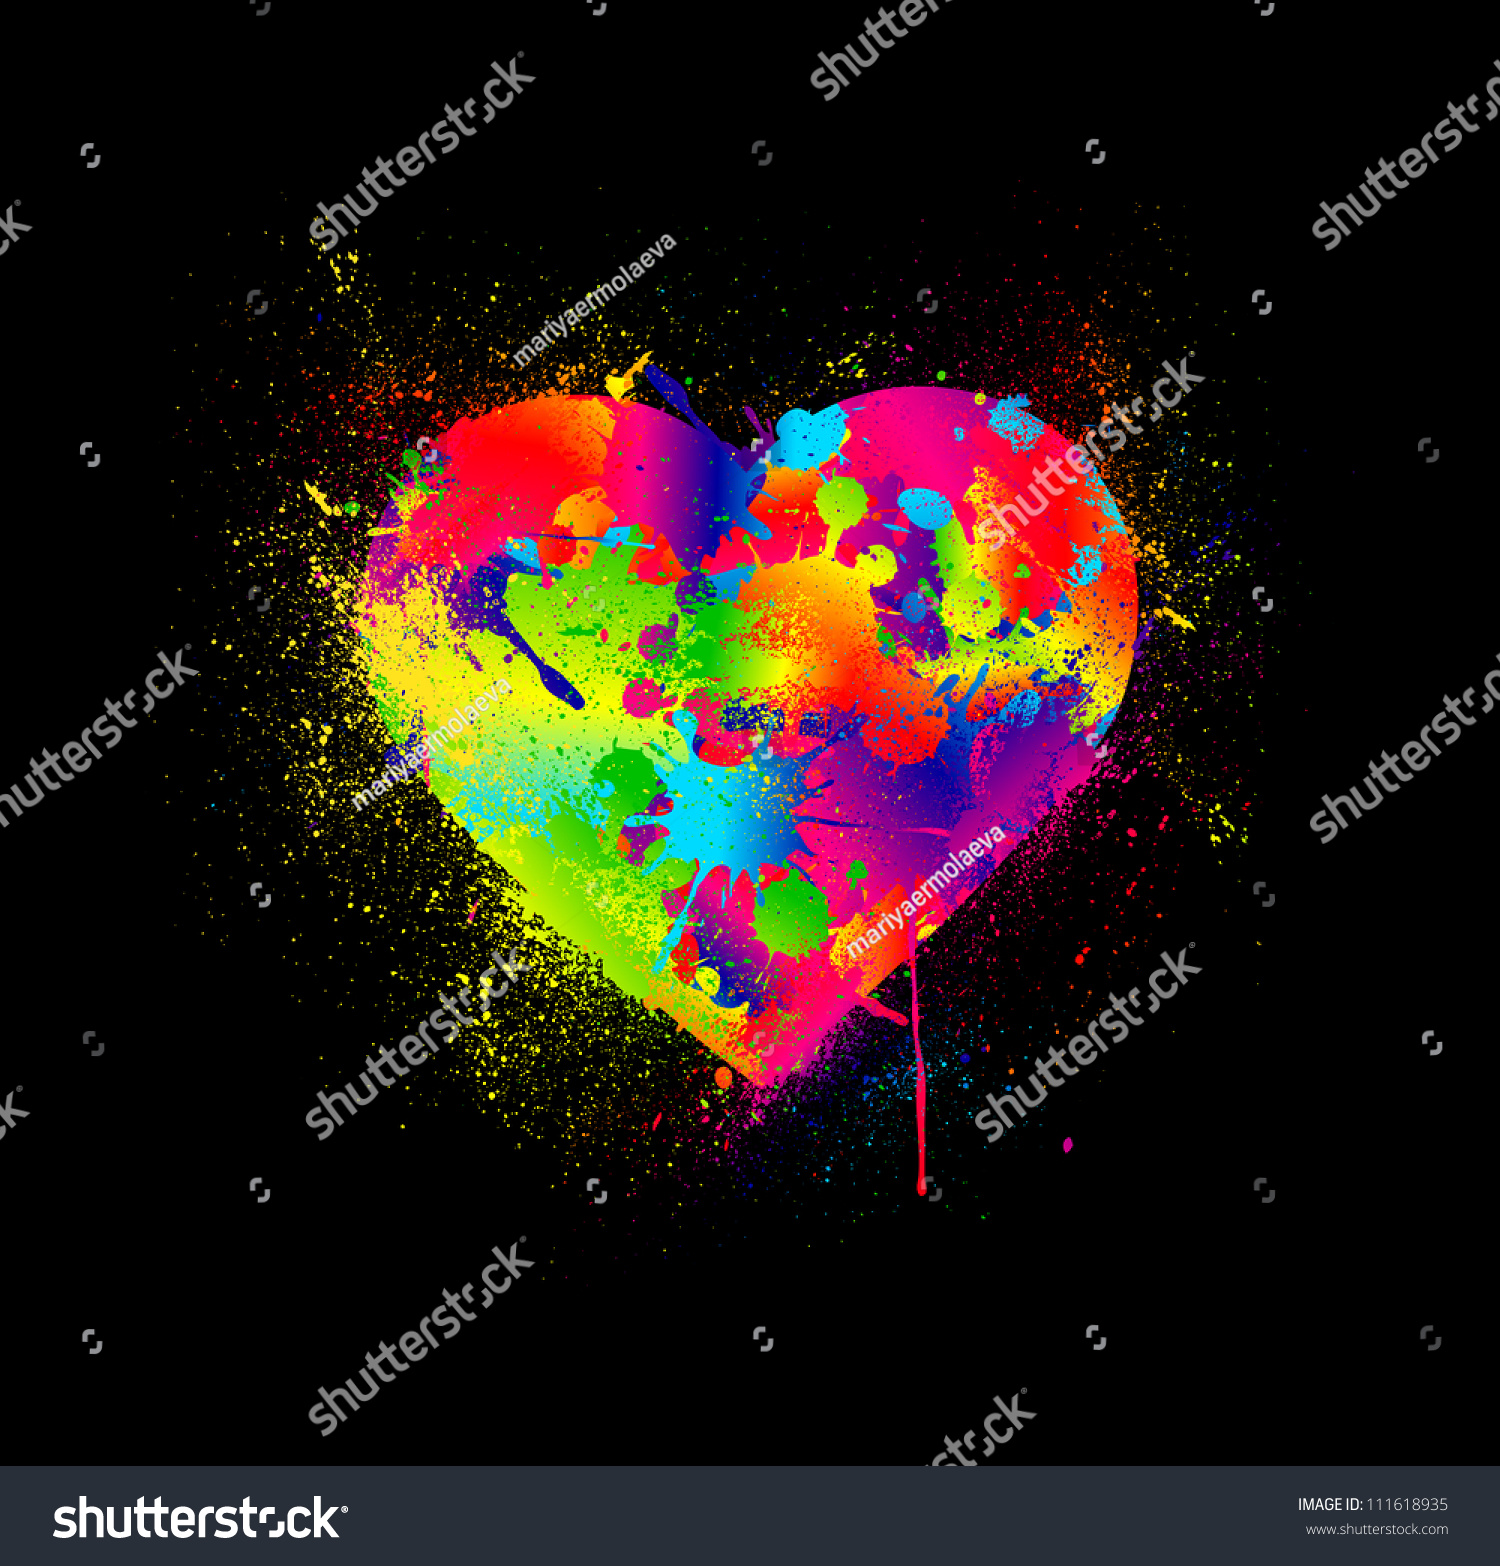 Paint Splatter Heart Vector Illustration Stock Vector 111618935 ...